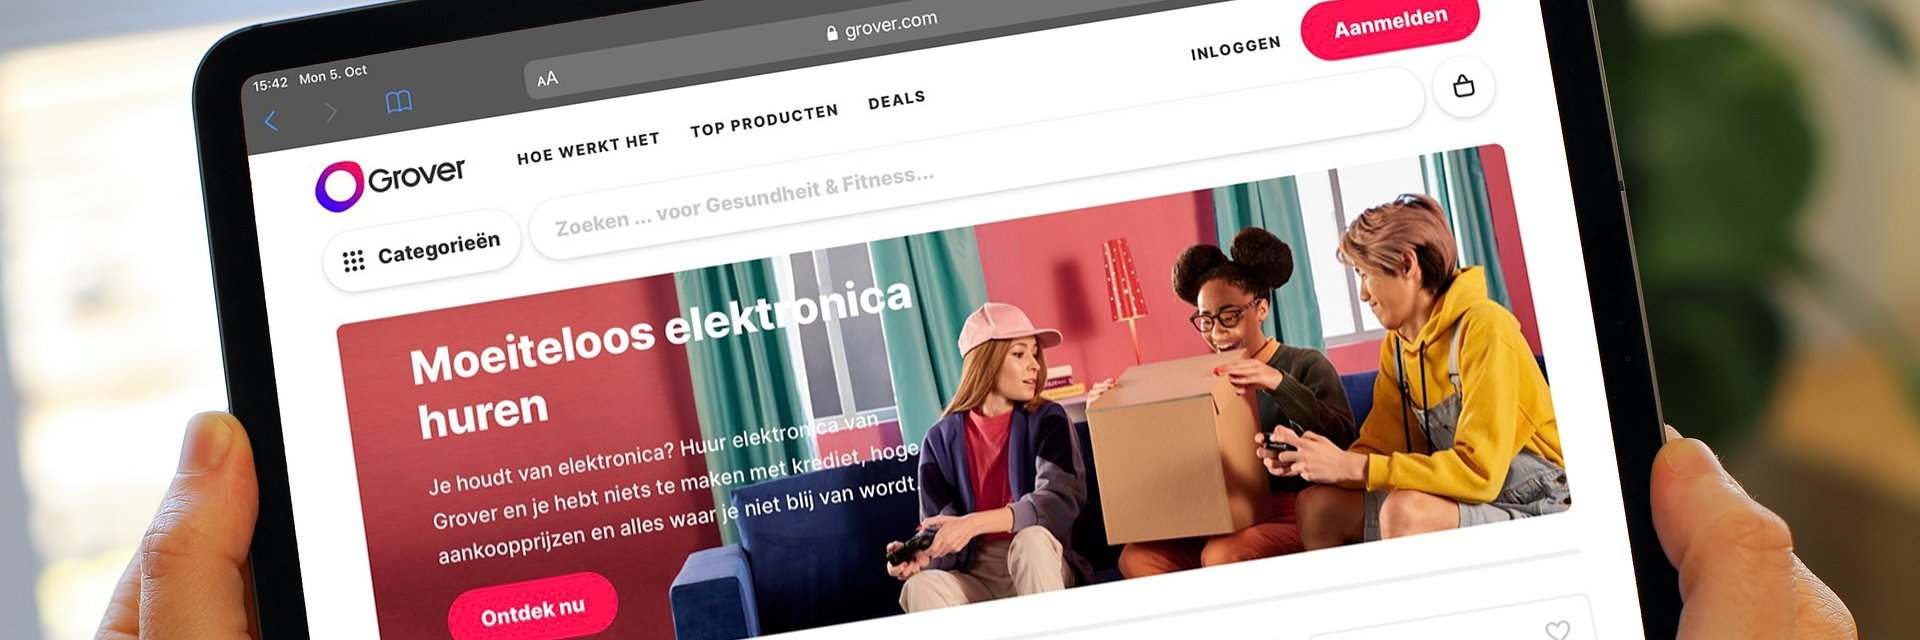 Online technology rental company Grover launches in the Netherlands